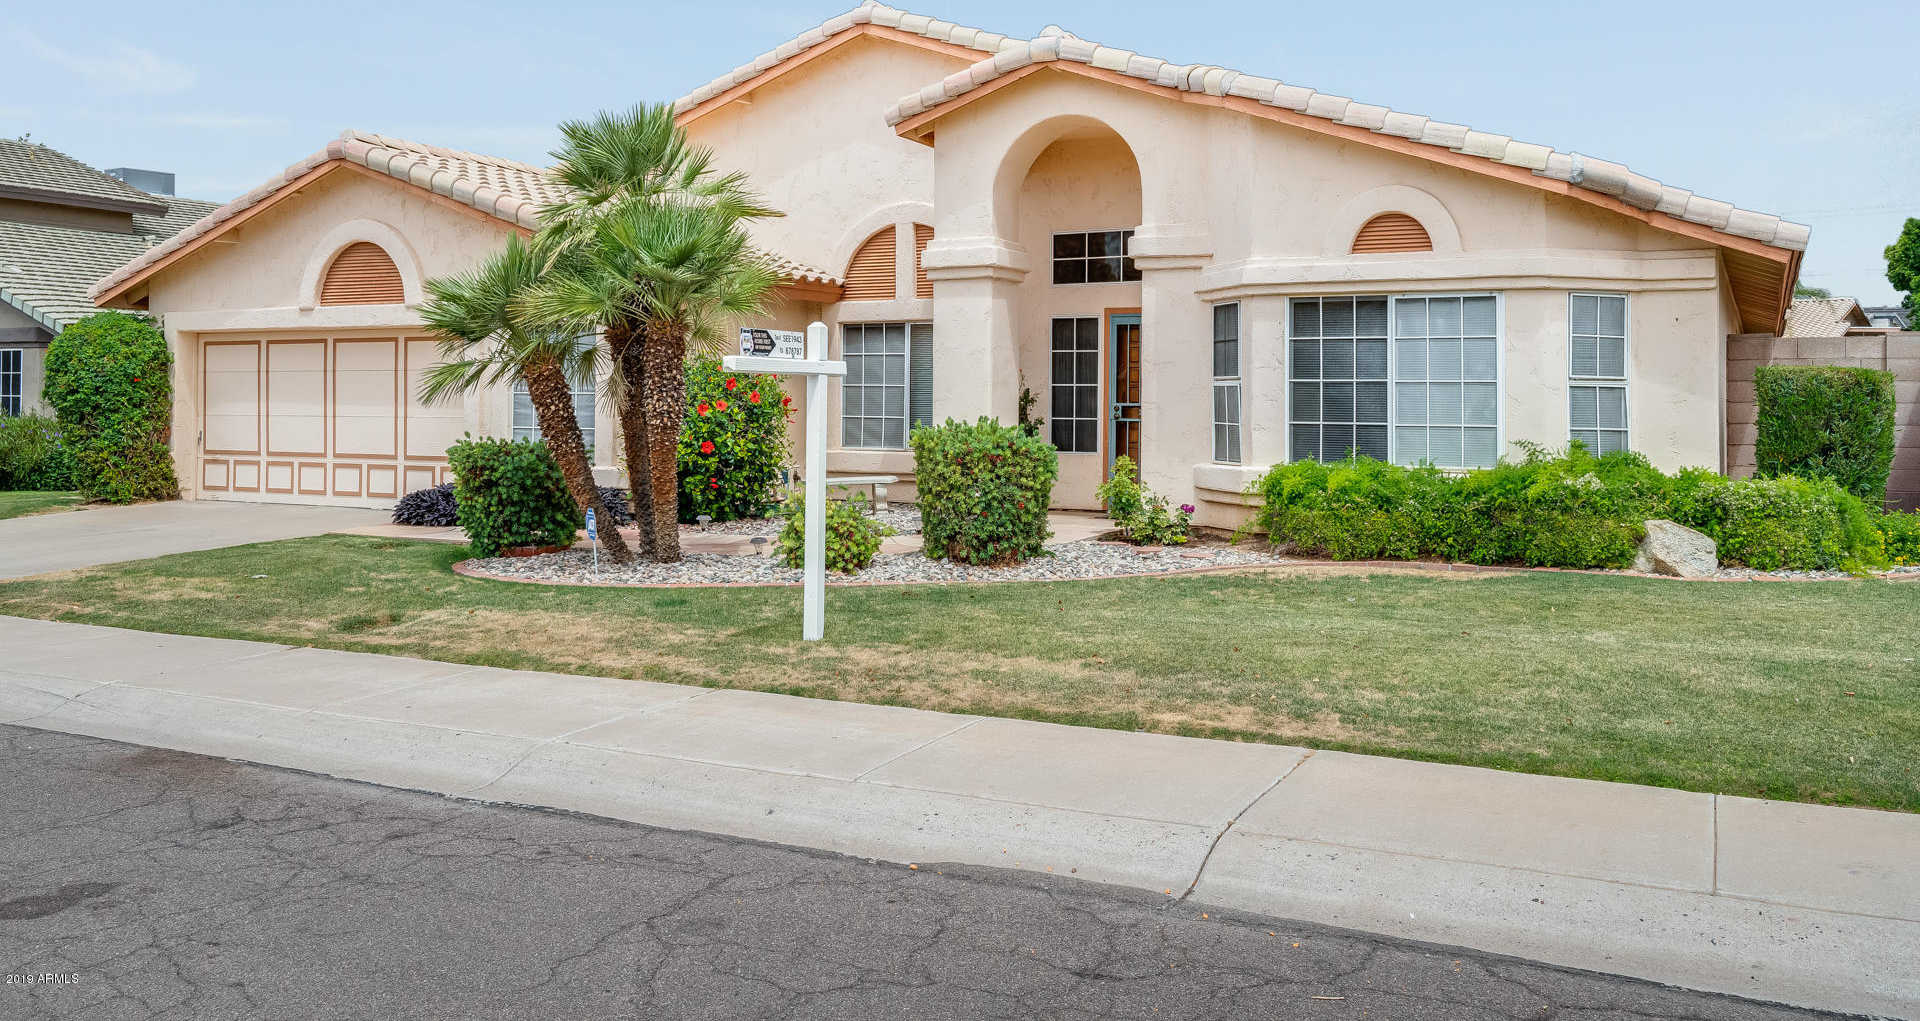 $330,000 - 3Br/2Ba - Home for Sale in North Canyon Ranch Unit 8, Glendale